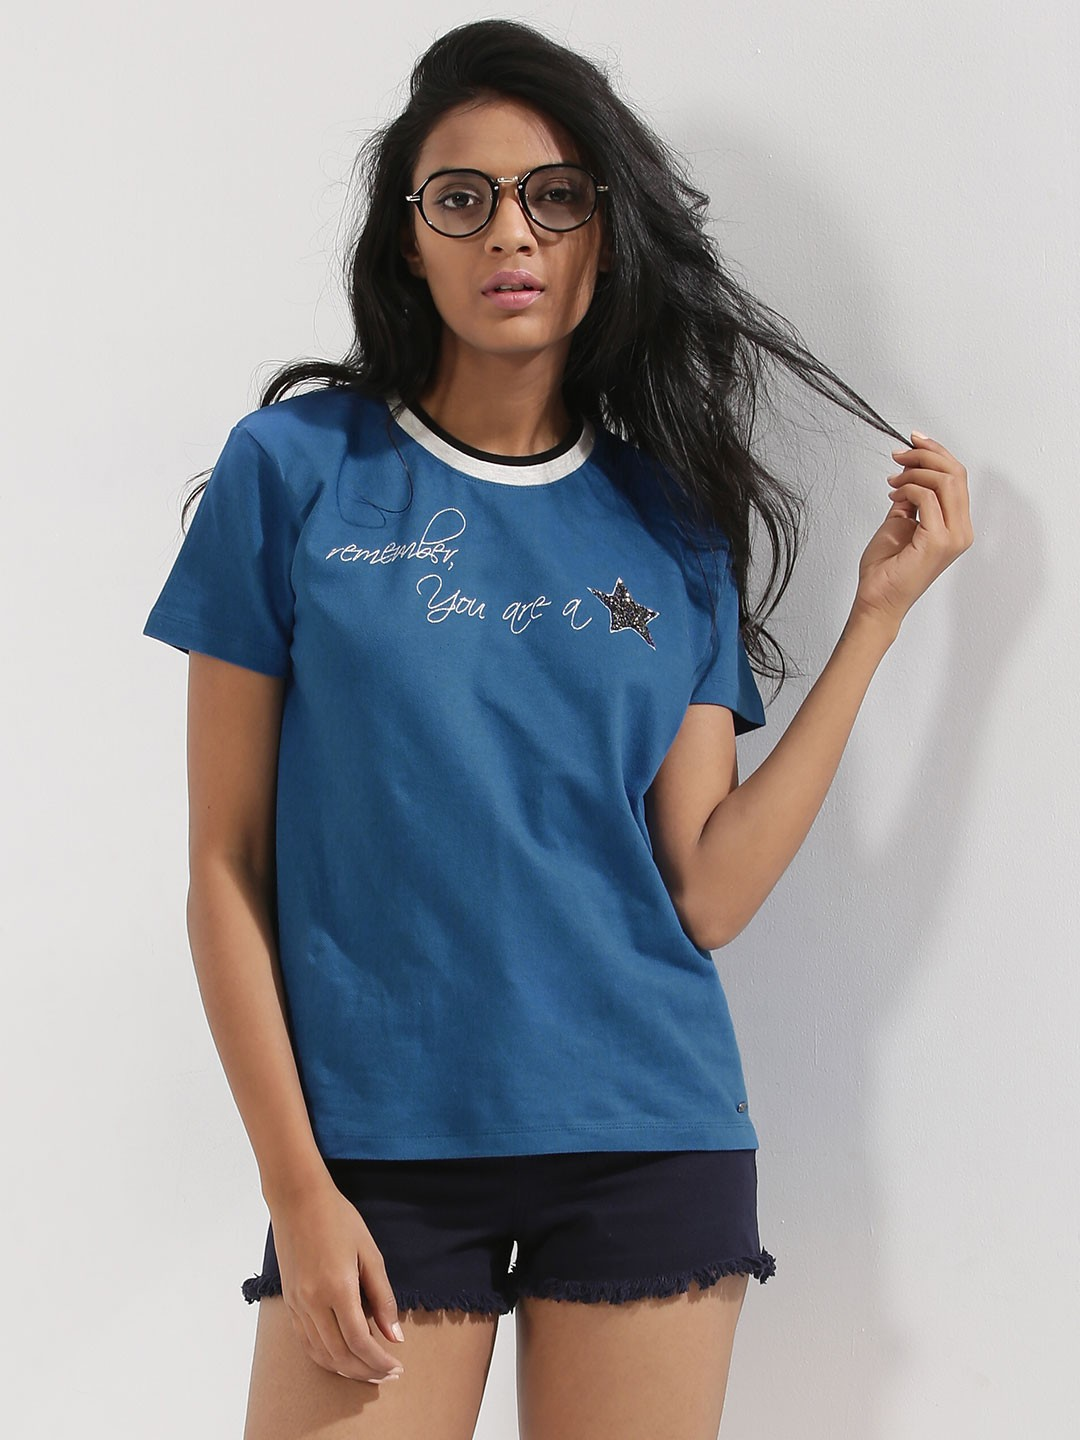 Buy being human embroidered pique t shirt for women for Being human t shirts buy online india